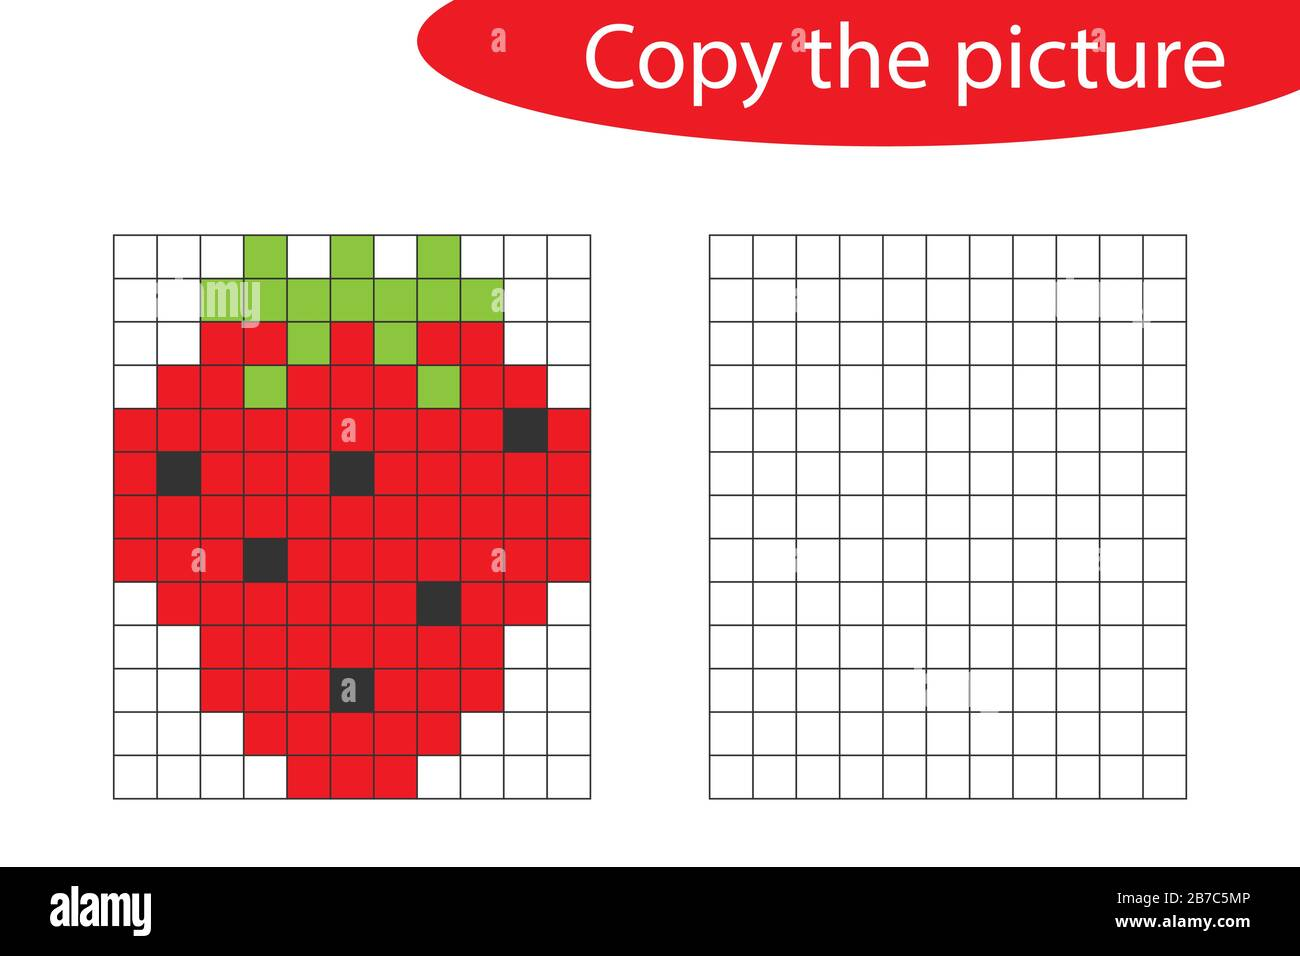 Copy The Picture Pixel Art Strawberry Cartoon Drawing Skills Training Educational Paper Game For The Development Of Children Kids Preschool Stock Vector Image Art Alamy